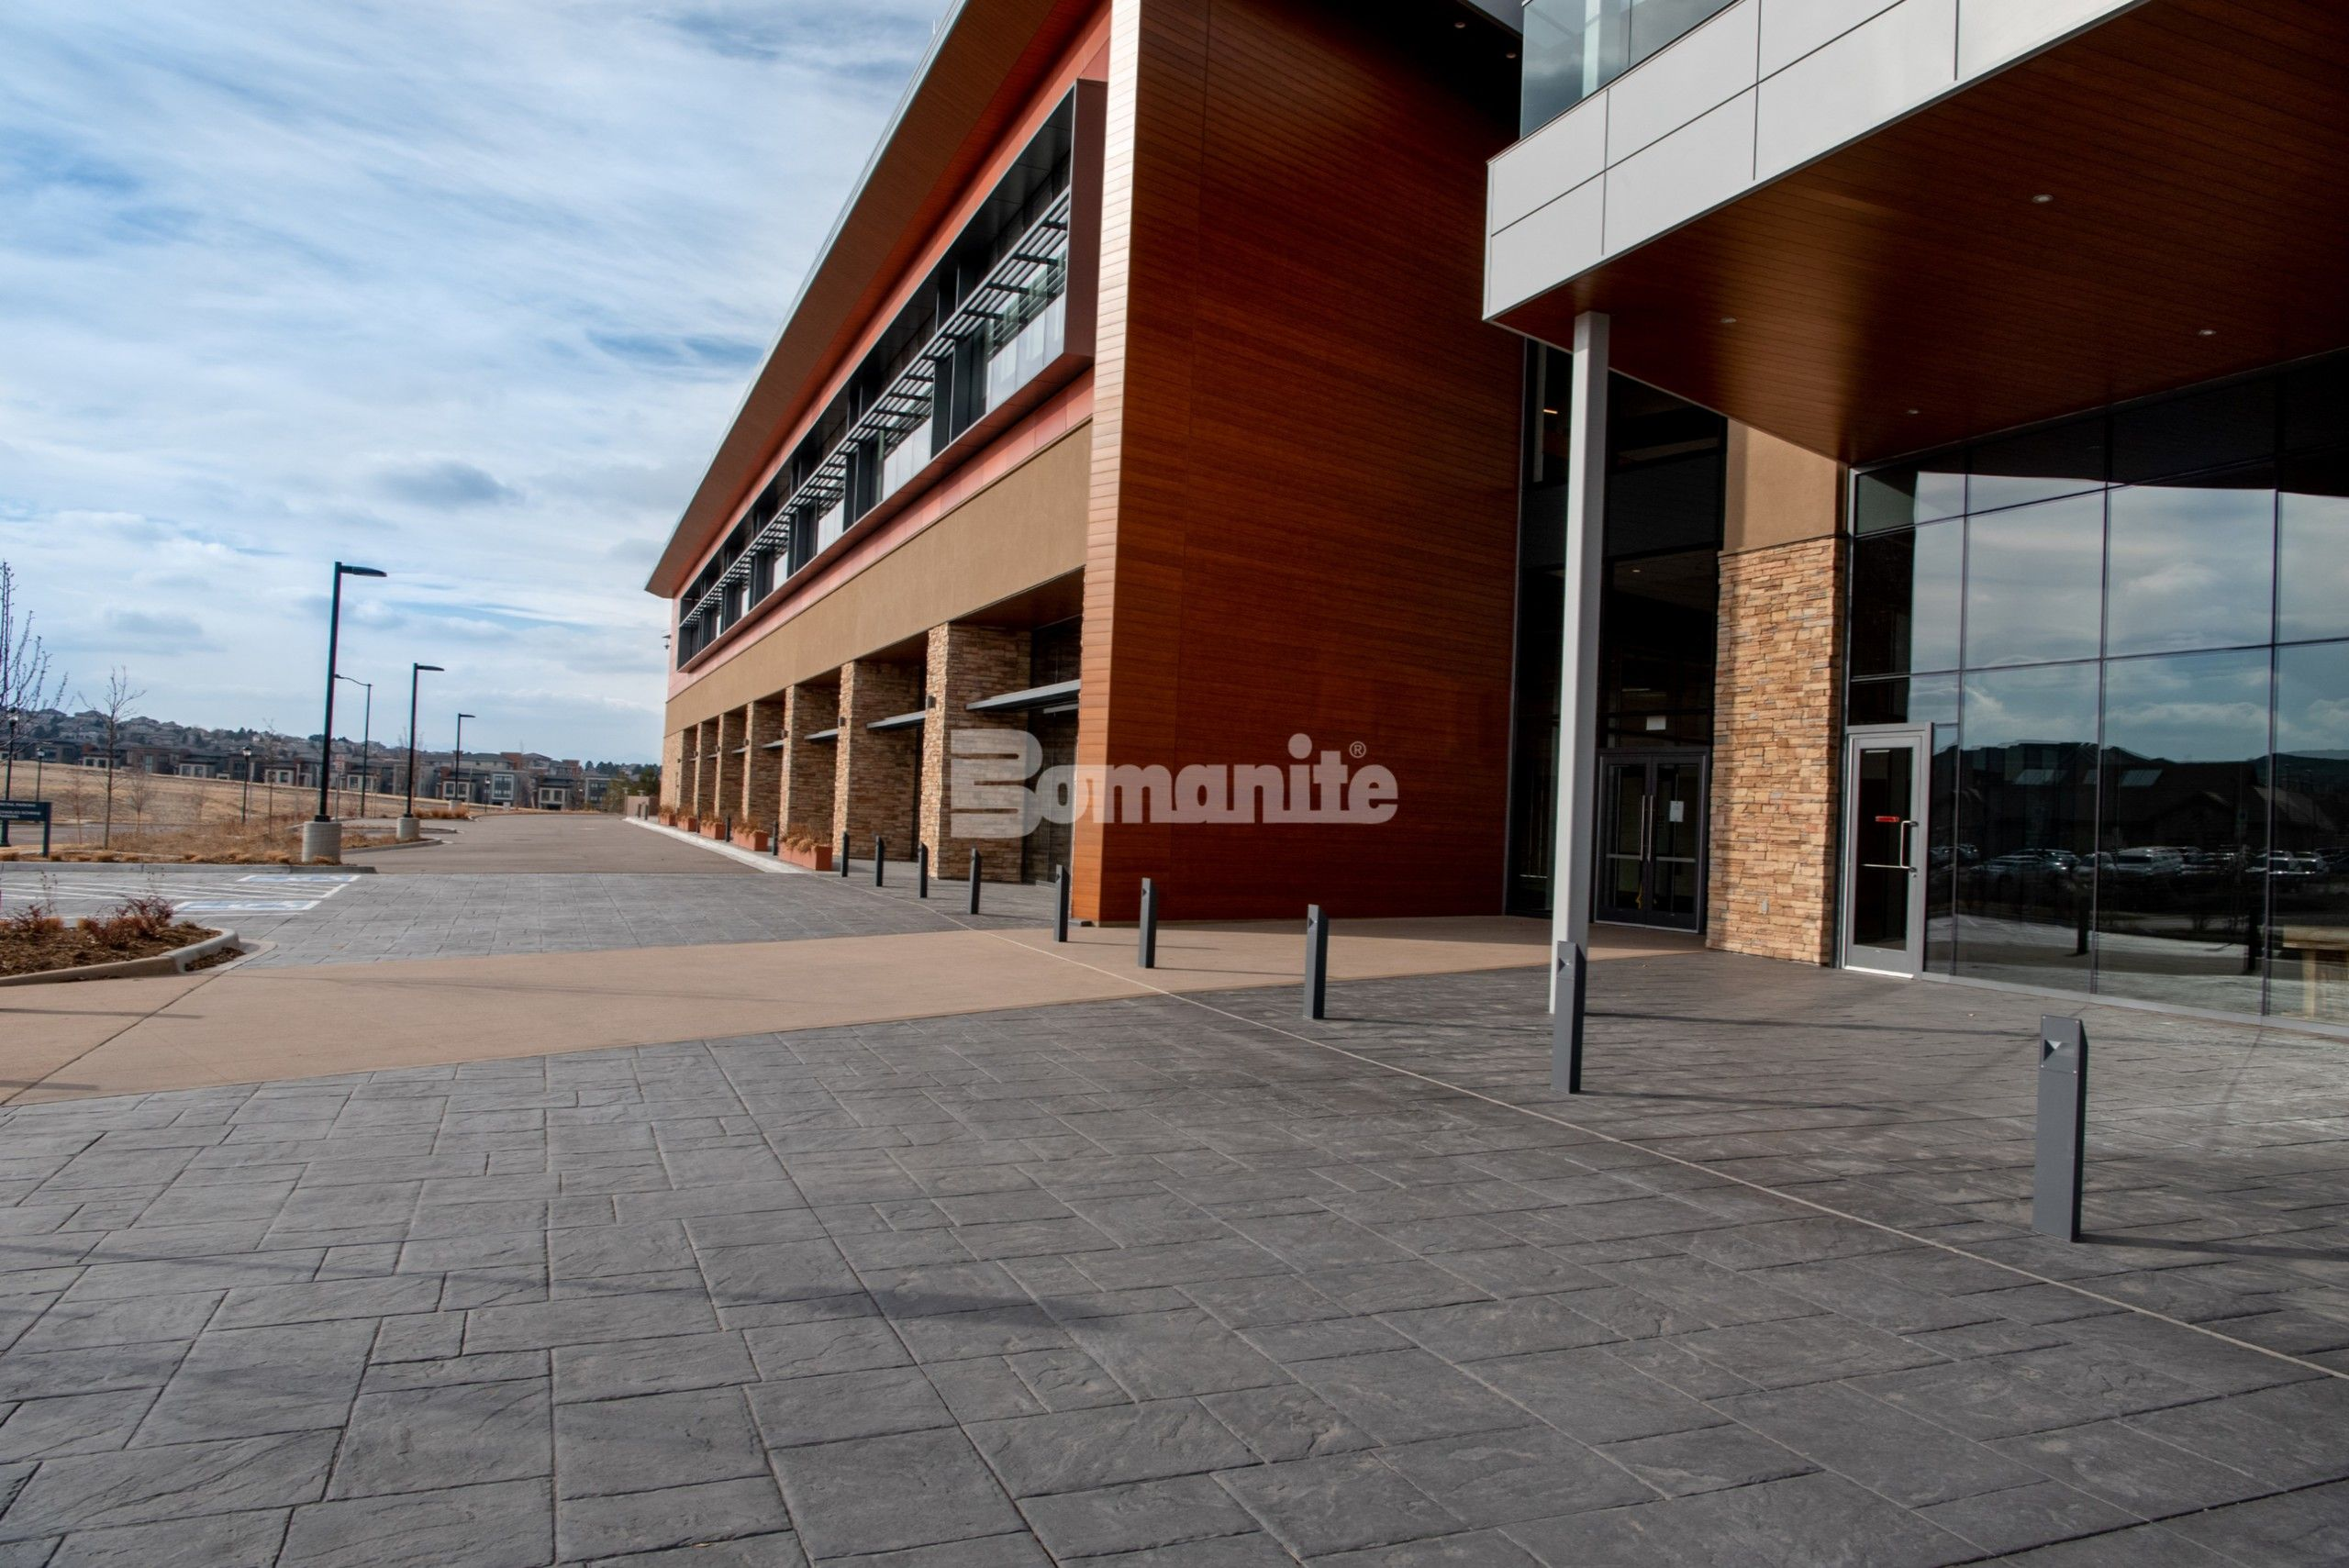 Colorado Hardscapes Installs Award Winning Bomanite Decorative Concrete Details for The Charles Schwab Conference Center at Ridgegate with a mix of Gray Bomanite Imprinted concrete systems for the field and Bomanite Exposed Aggregate Systems Sandscape Texture for accentuated bands of color.